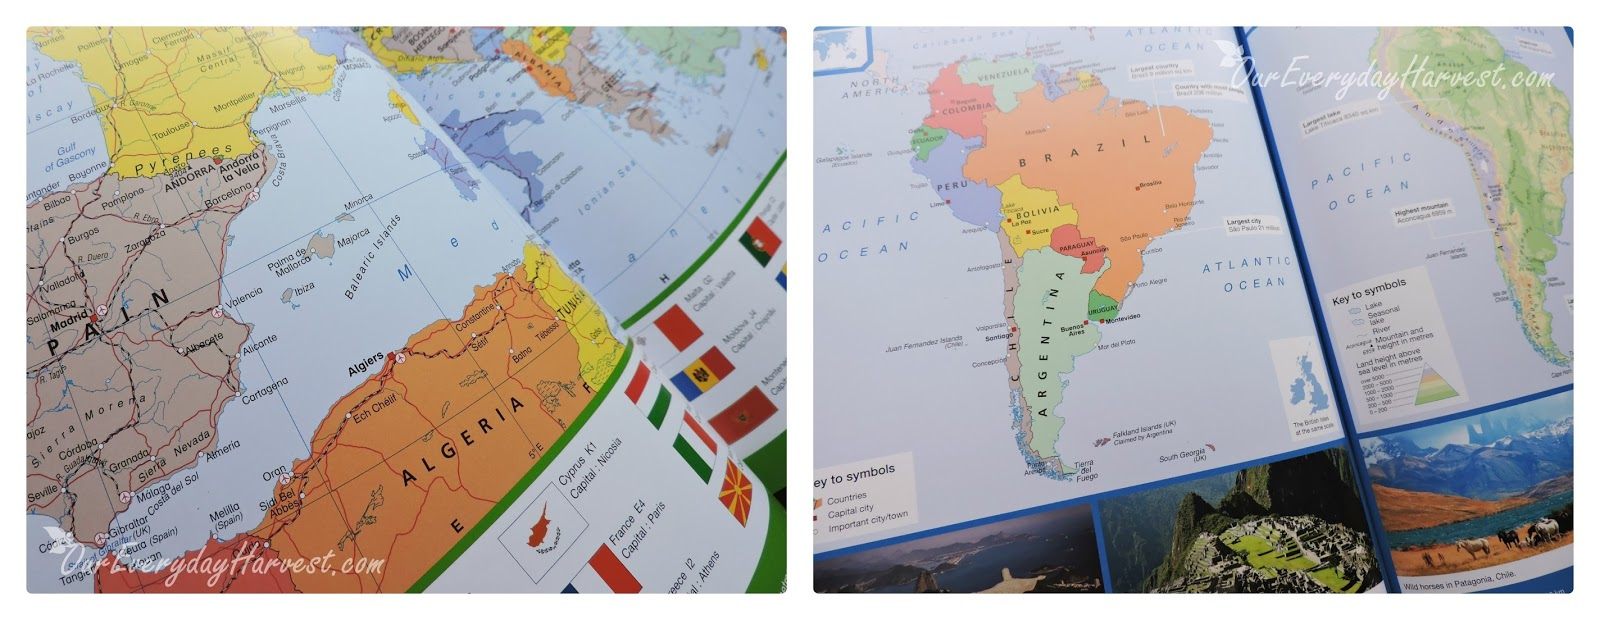 Introducing Geography to Children of All Ages with the